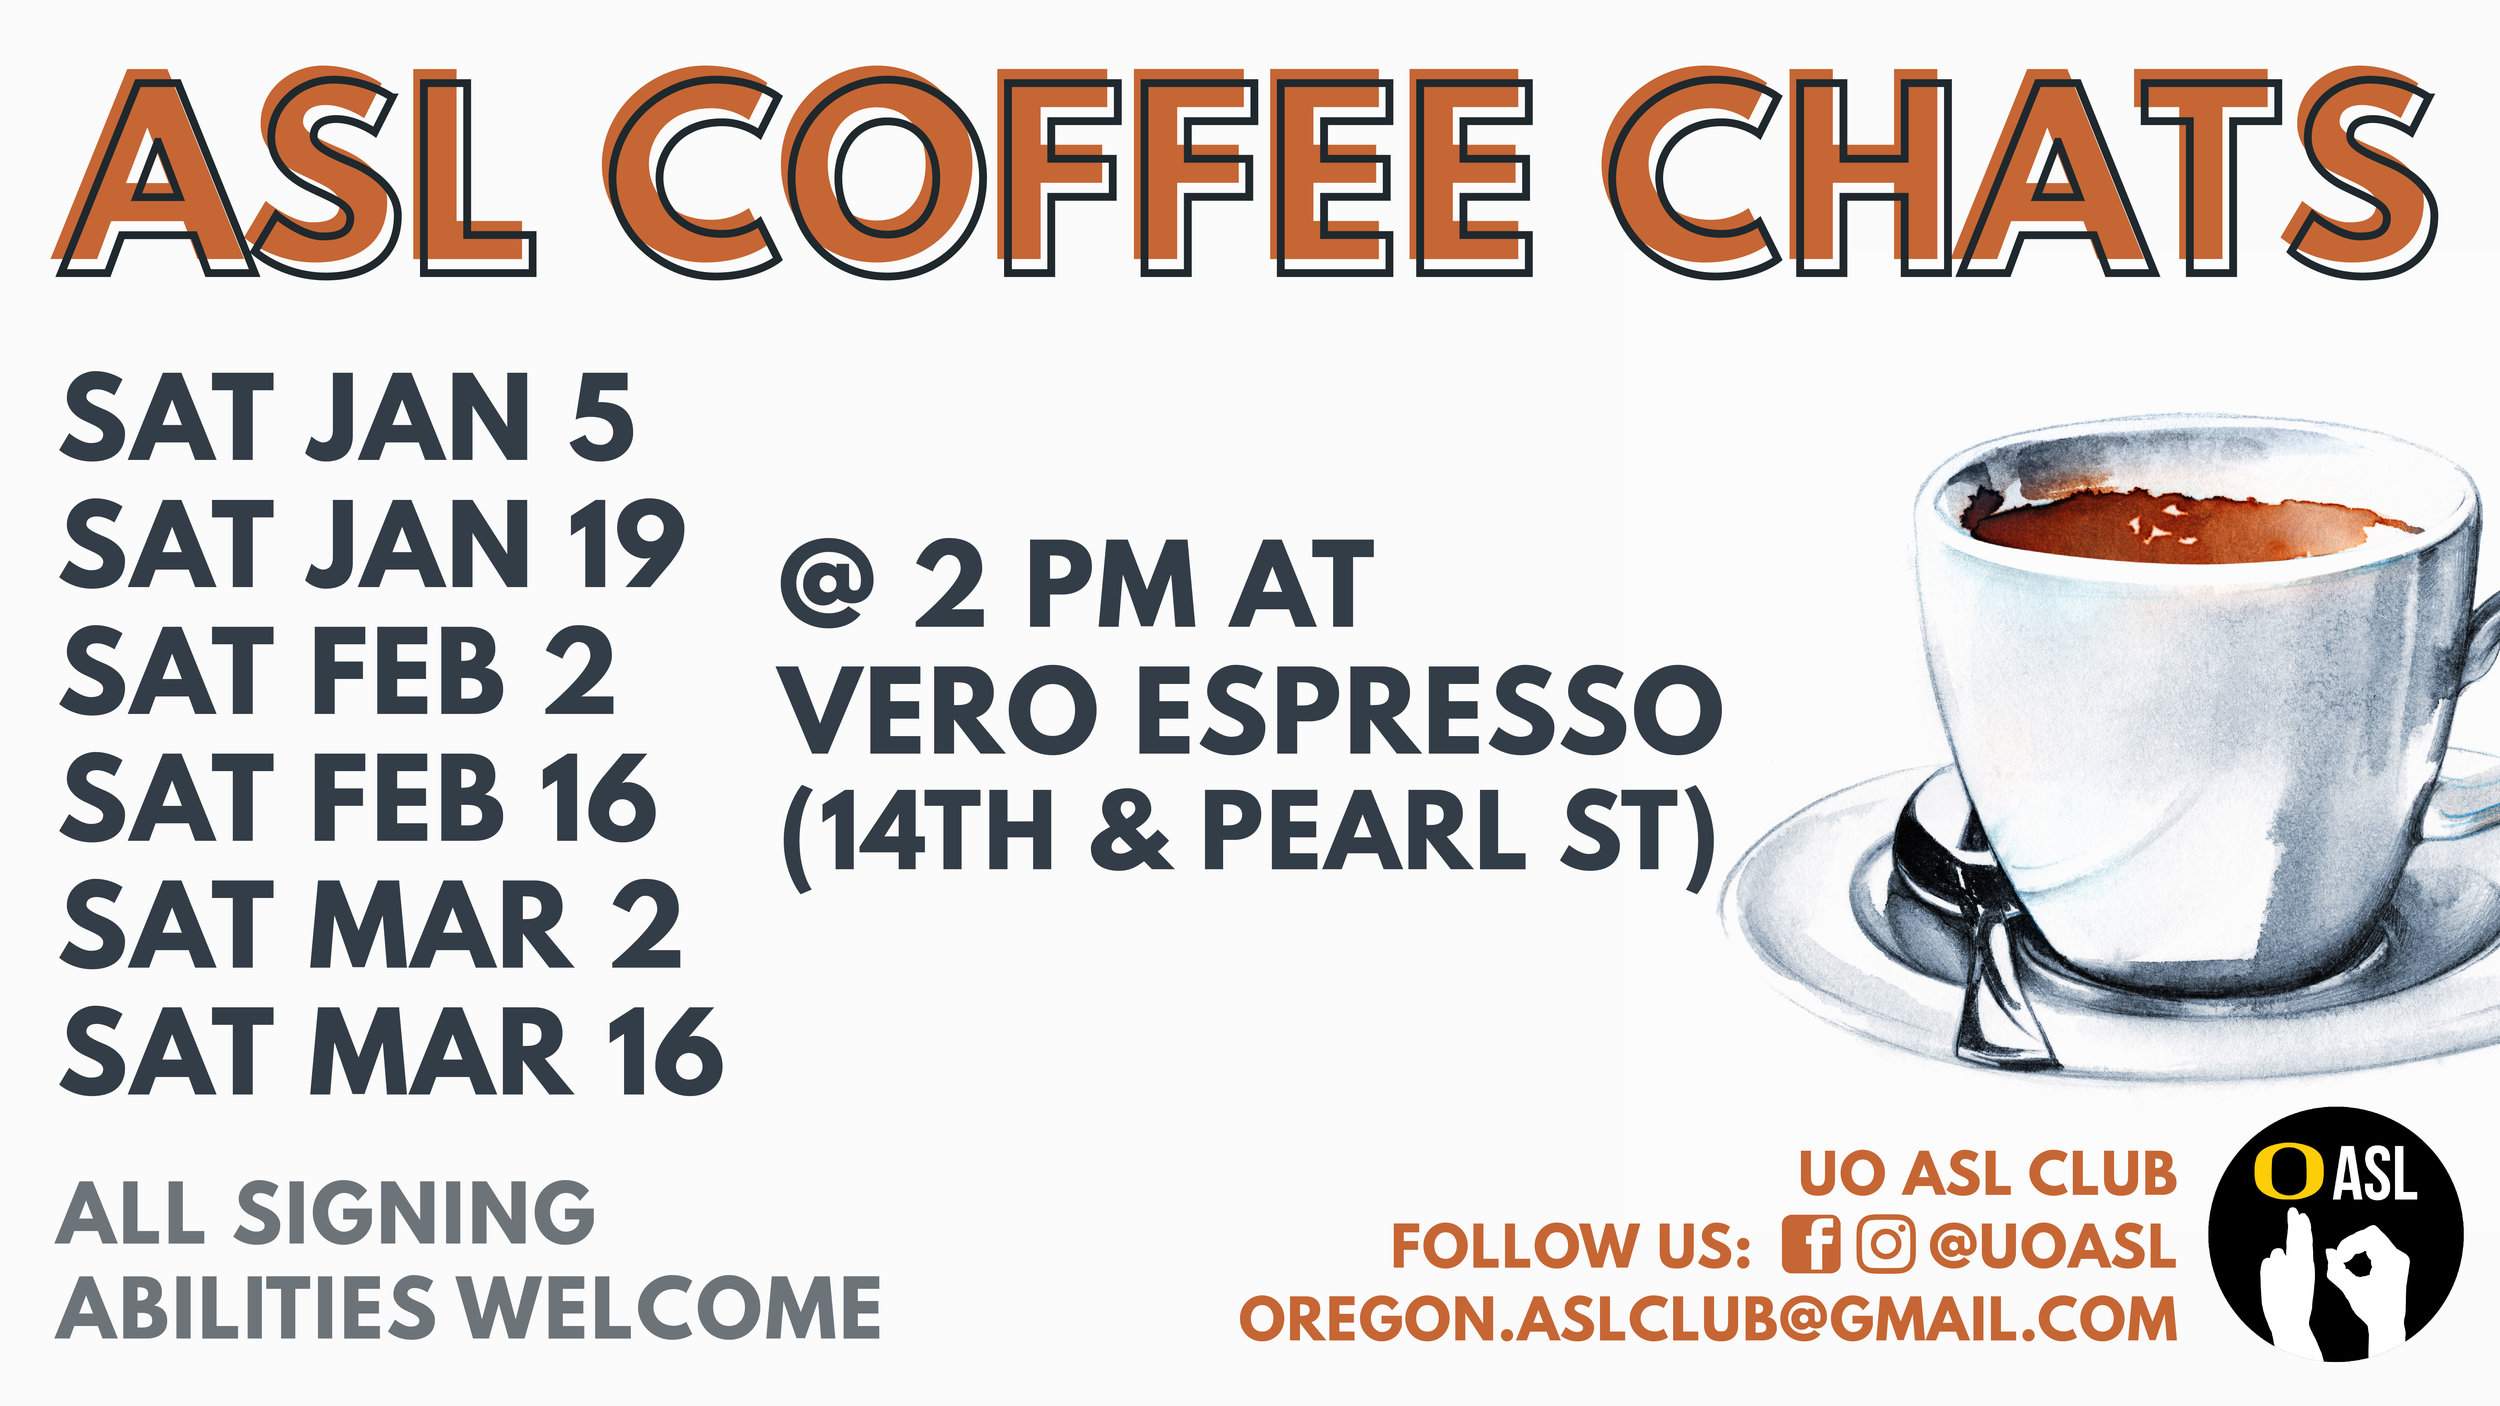 asl coffee chats winter 2019-01.jpg